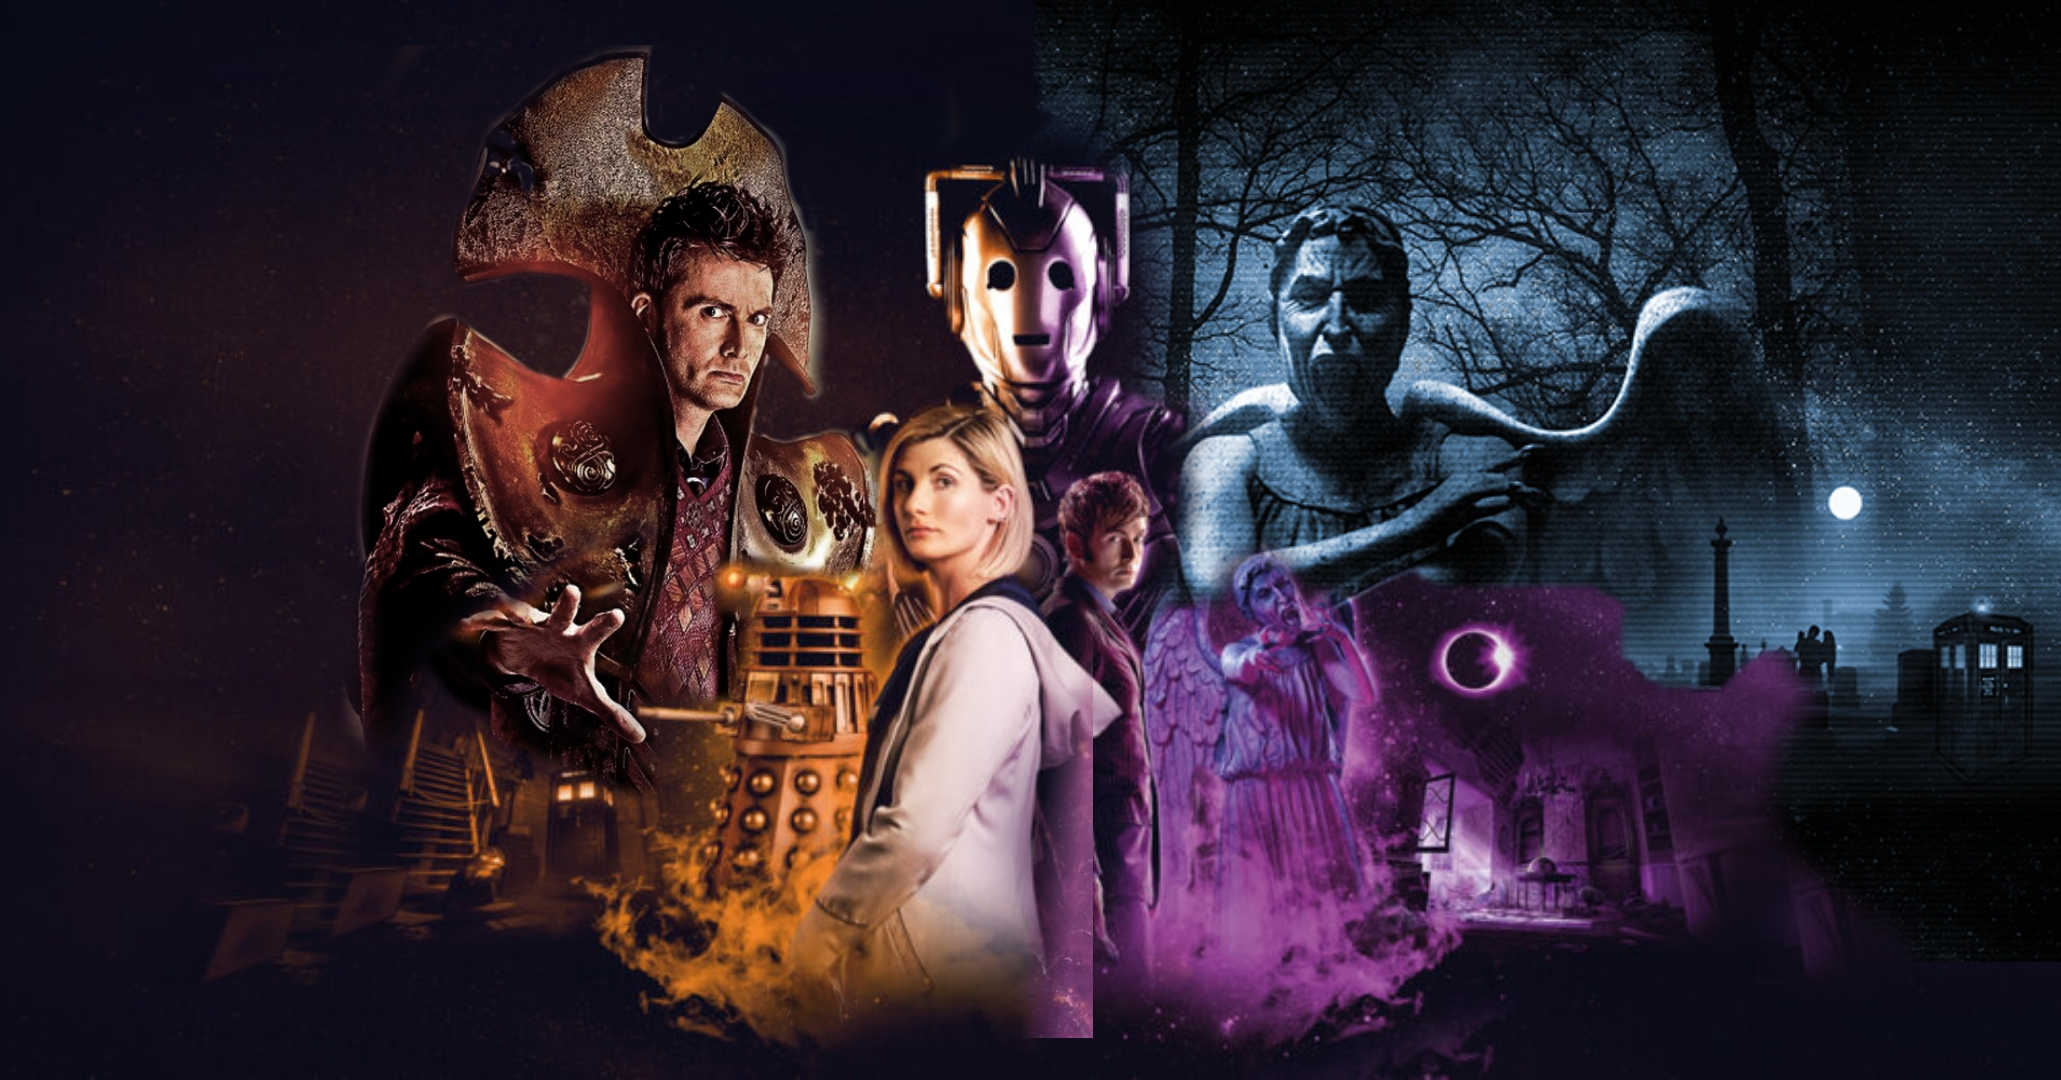 Doctor Who: The Edge of Reality, comes to PCs and Consoles in Spring 2021 (c) Maze Theory Gaming Thirteenth Doctor Tenth Doctor Daleks Cybermen Weeping Angels